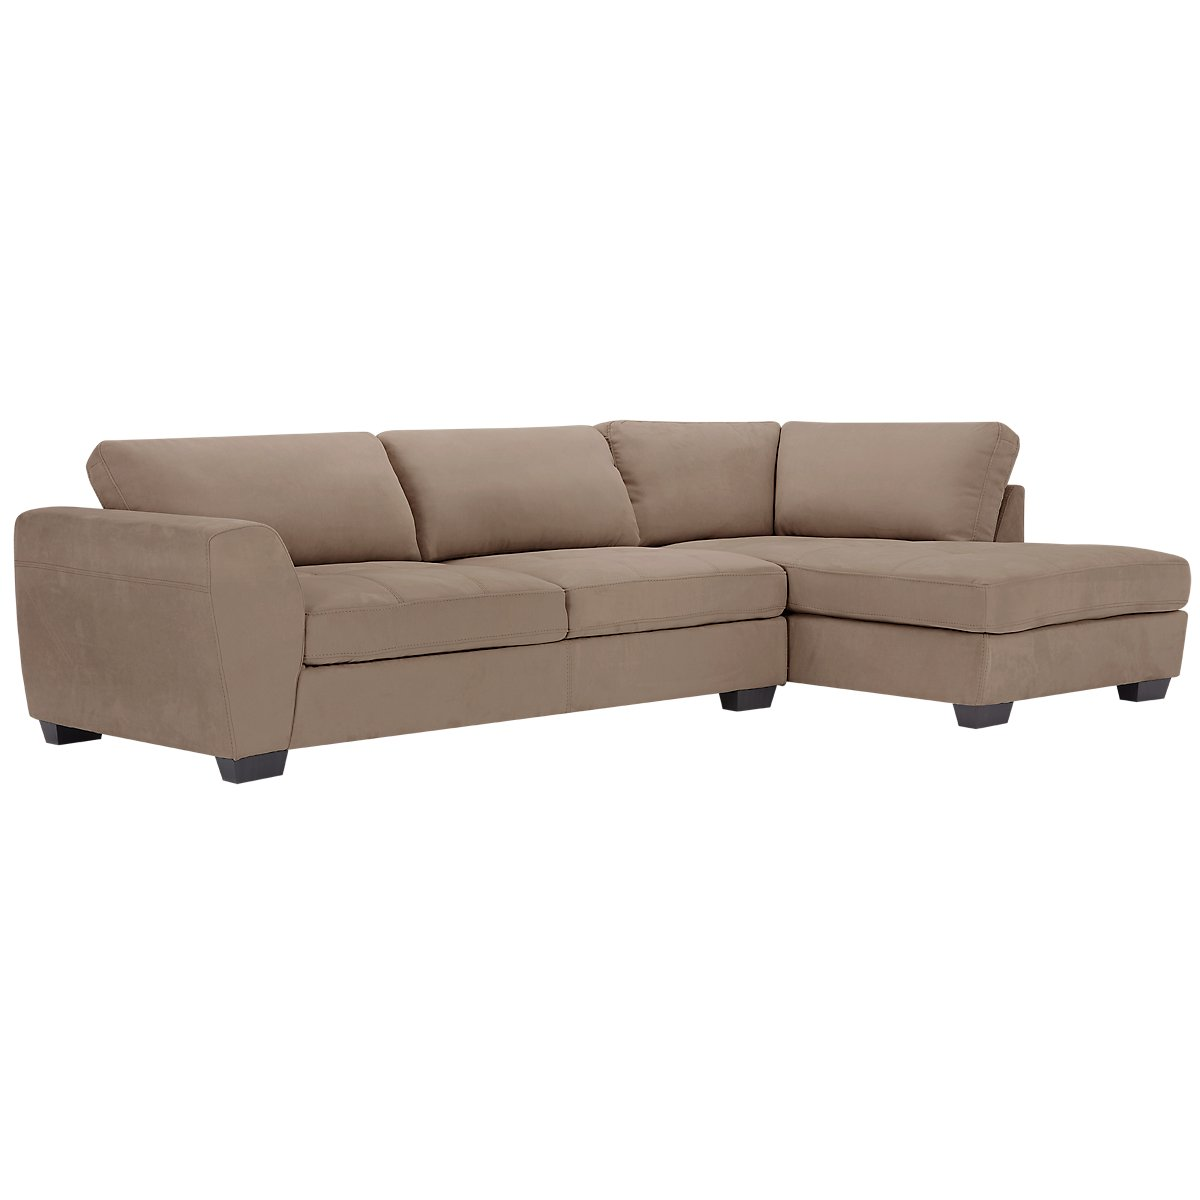 city furniture perry dark taupe microfiber right chaise. Black Bedroom Furniture Sets. Home Design Ideas